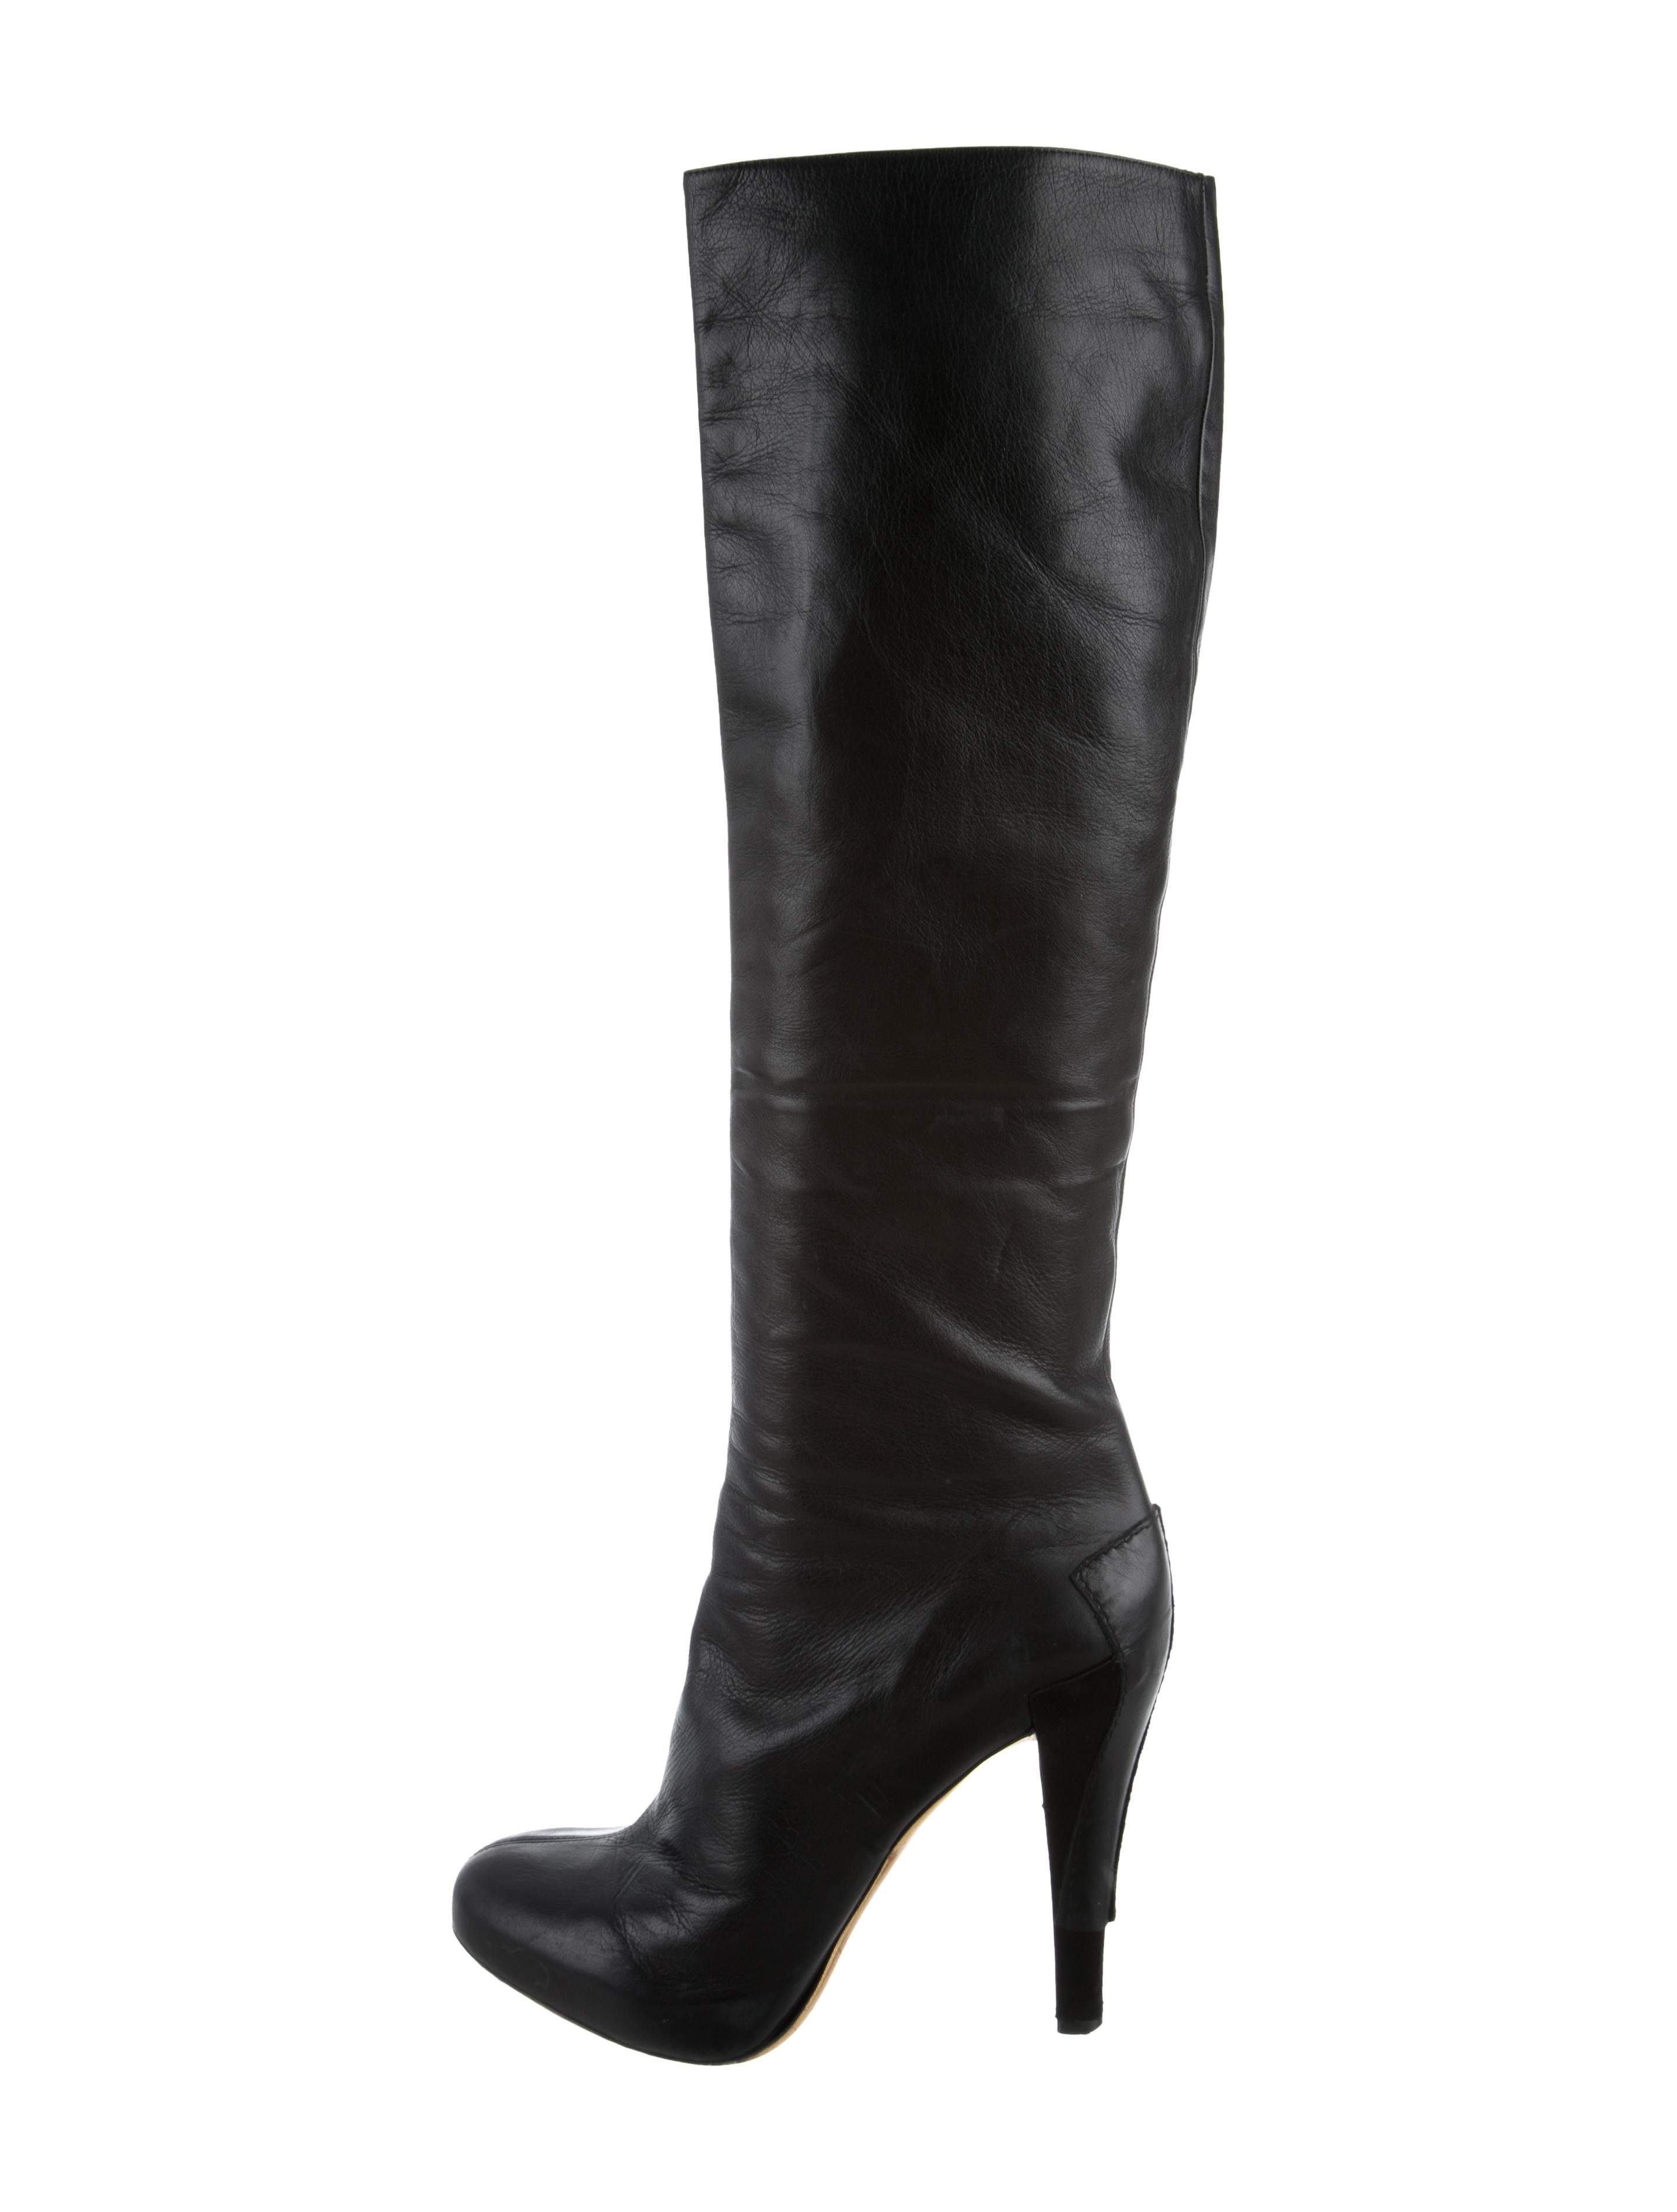 Christian Dior Leather Knee Boots buy cheap exclusive huge surprise free shipping low price fee shipping supply for sale sale real x1JjoHD